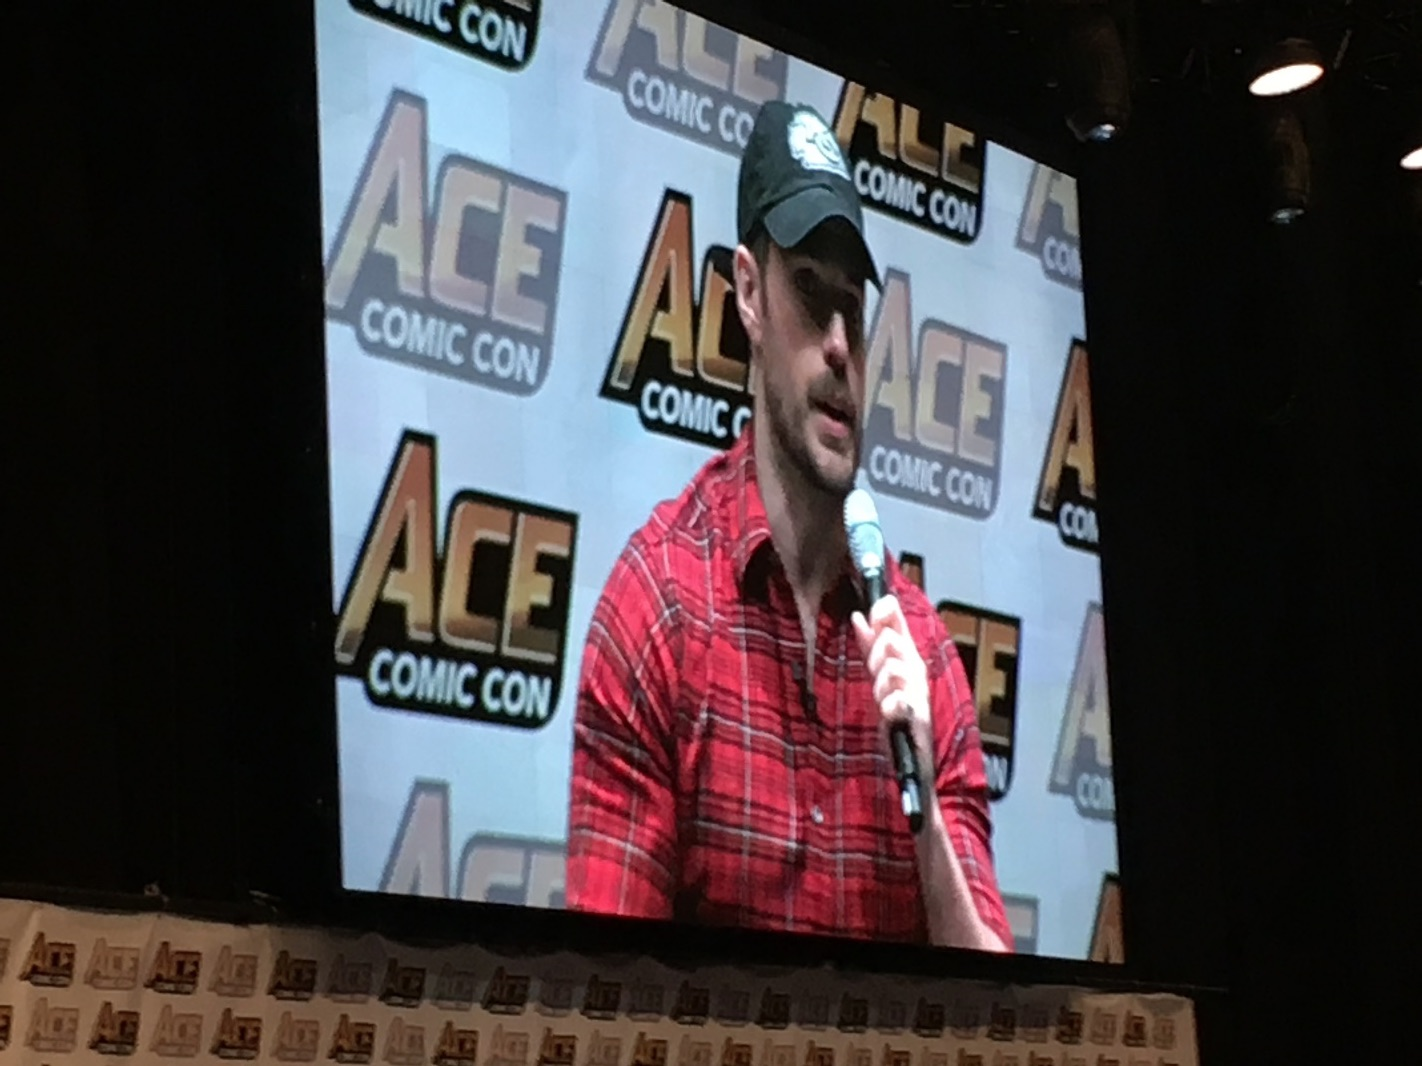 ACEComicCon-image037